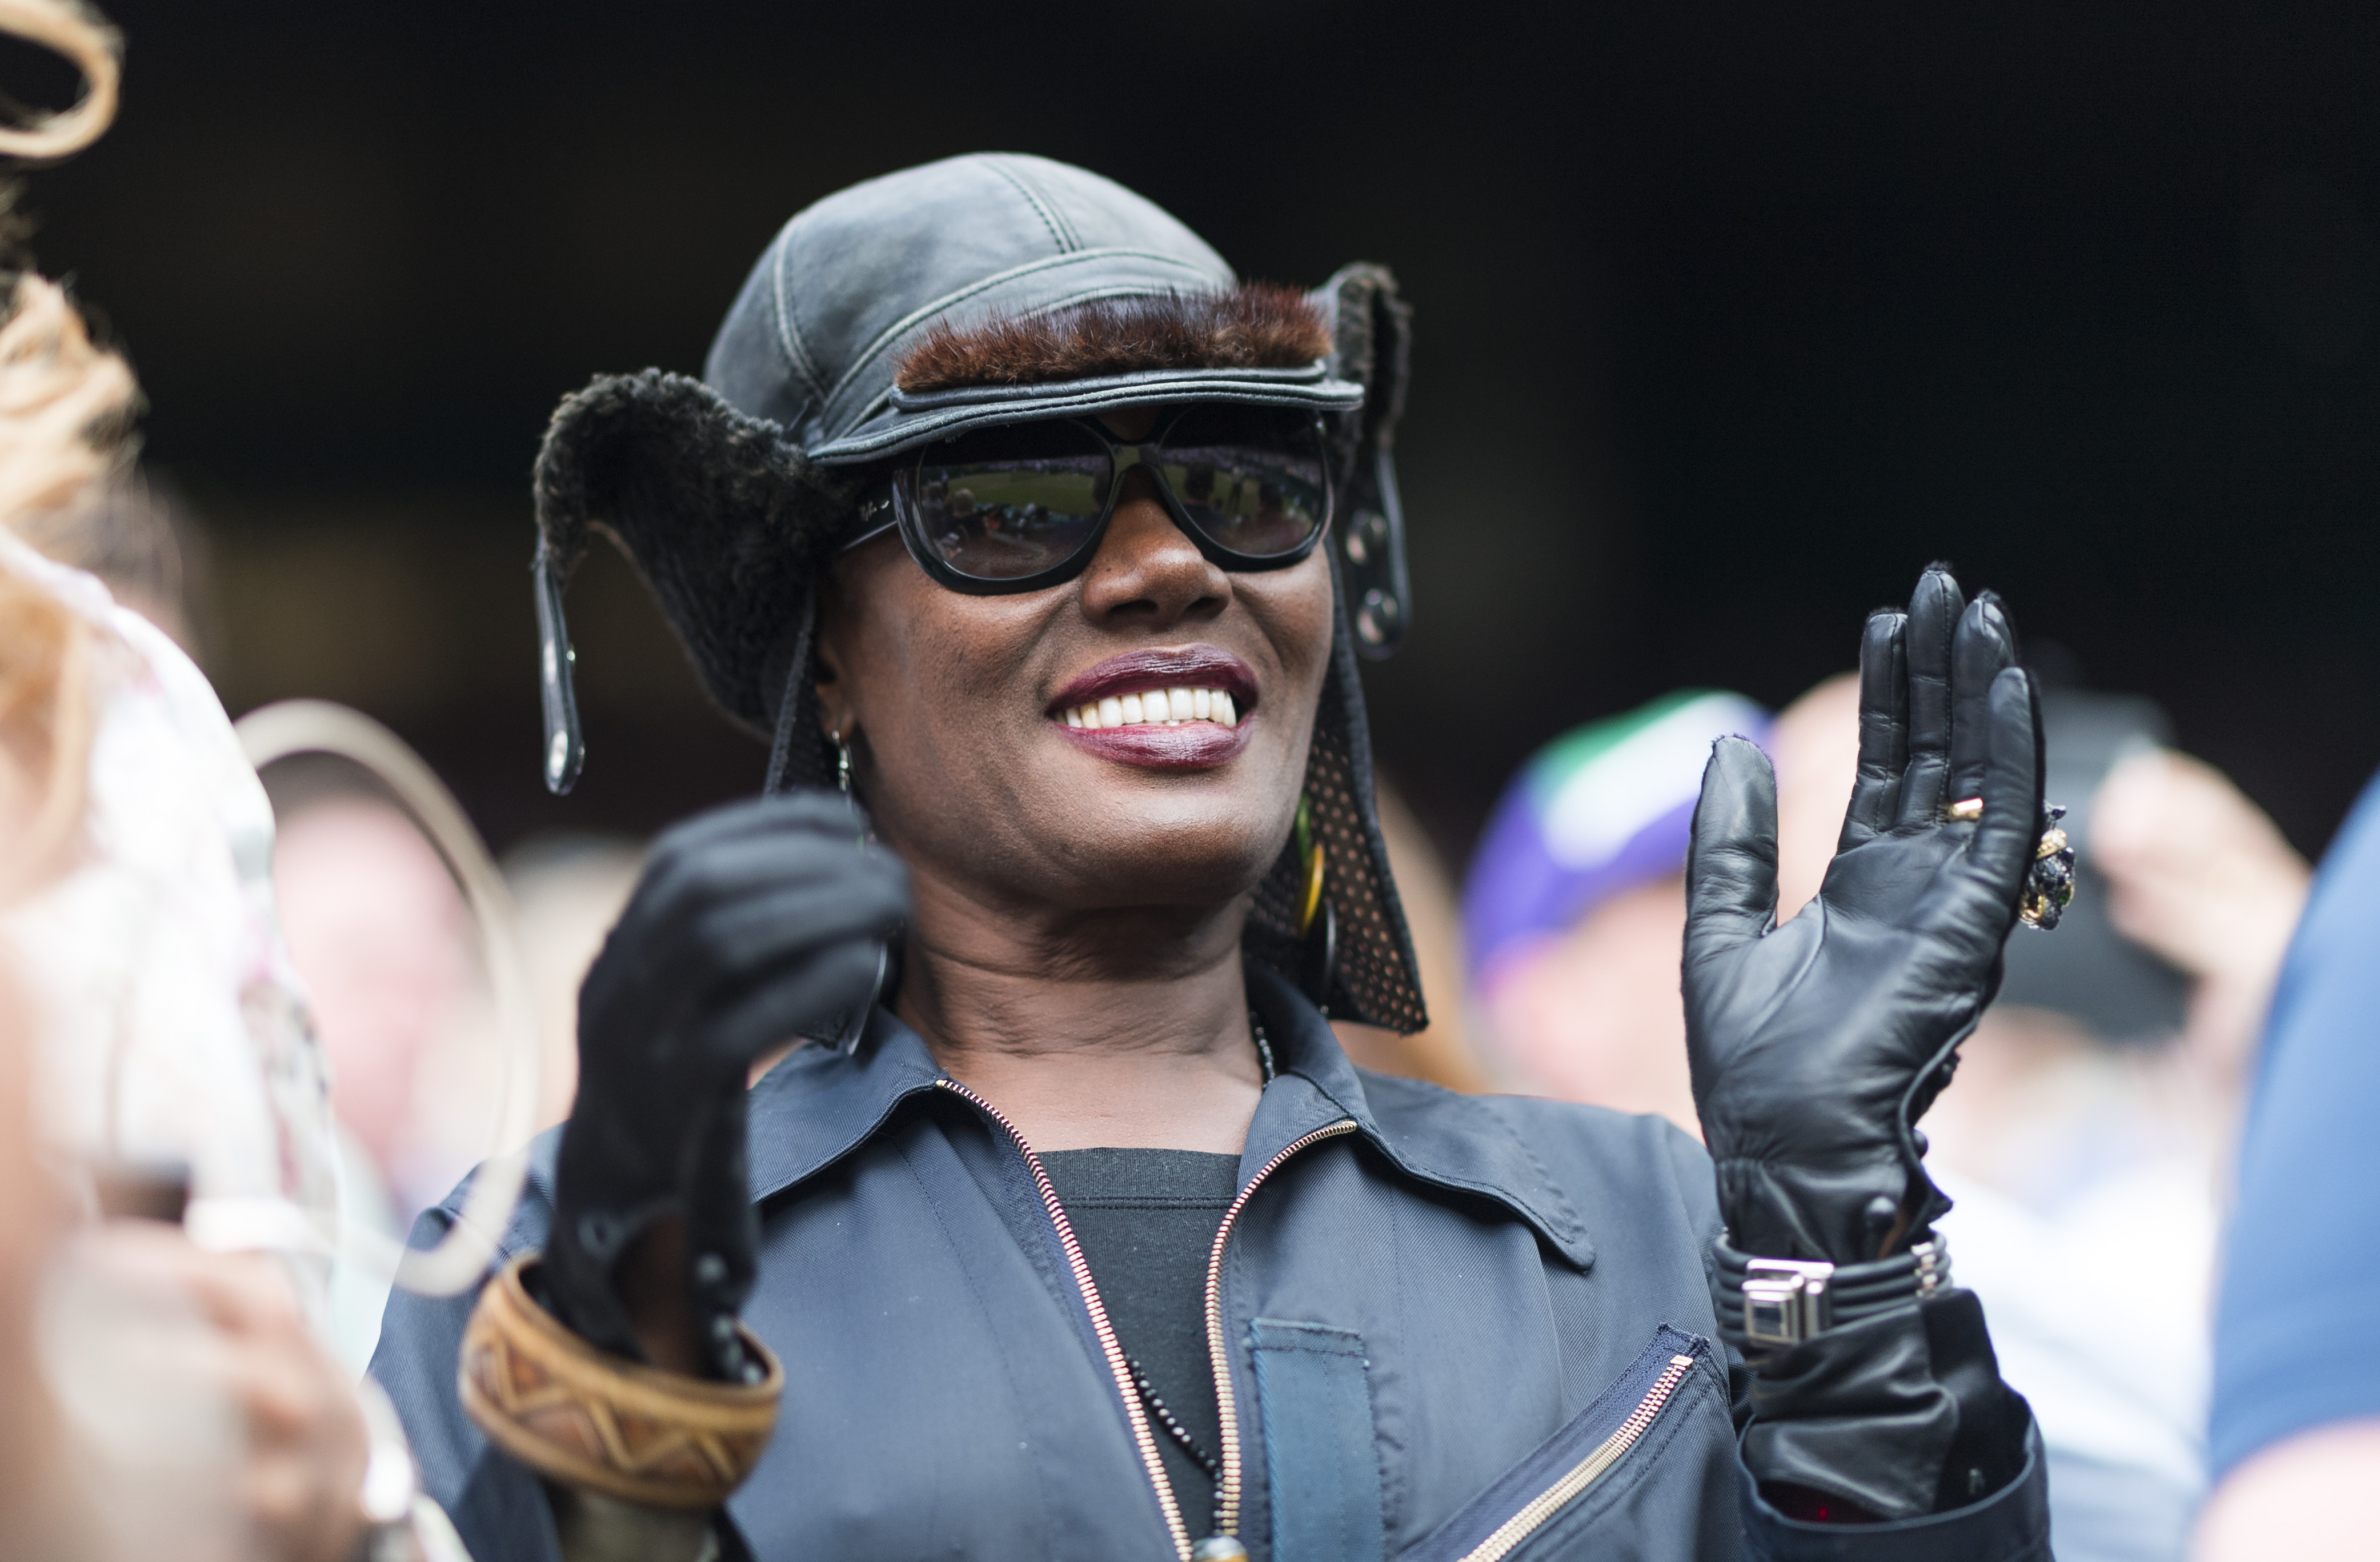 Grace Jones reacts as Roger Federer (SUI) beats Tomas Berdych (CZE)Wimbledon 2017, Day 11, All England Lawn Tennis Club, London UK, 14 July 2017